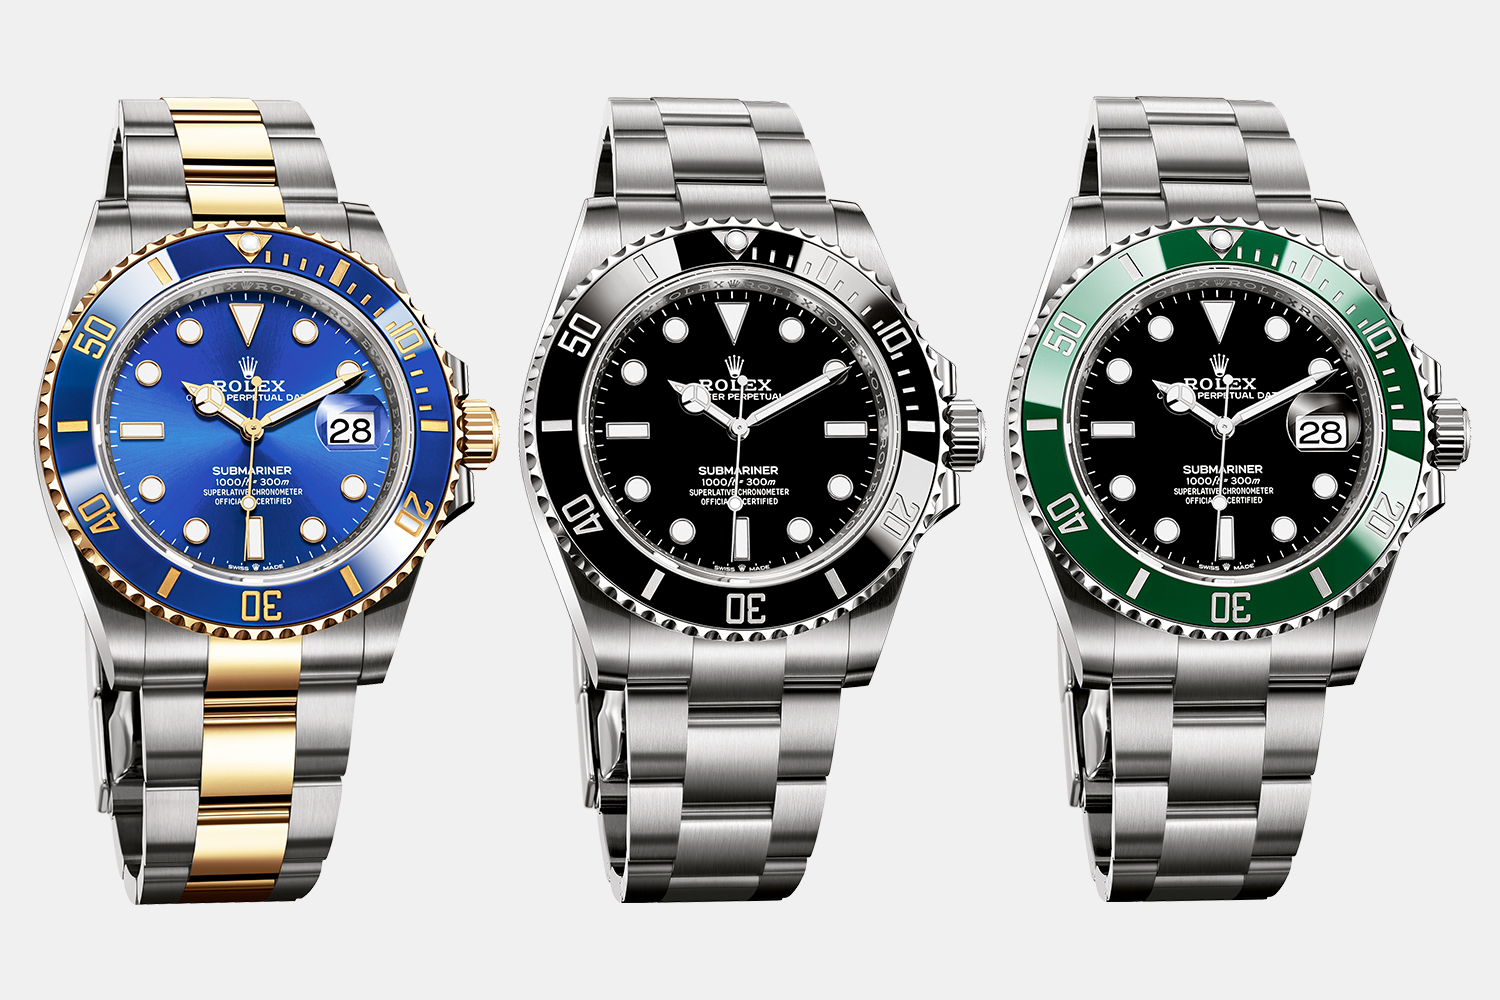 The new 2020 Oyster Perpetual Submariner and two Oyster Perpetual Submariner Date watches